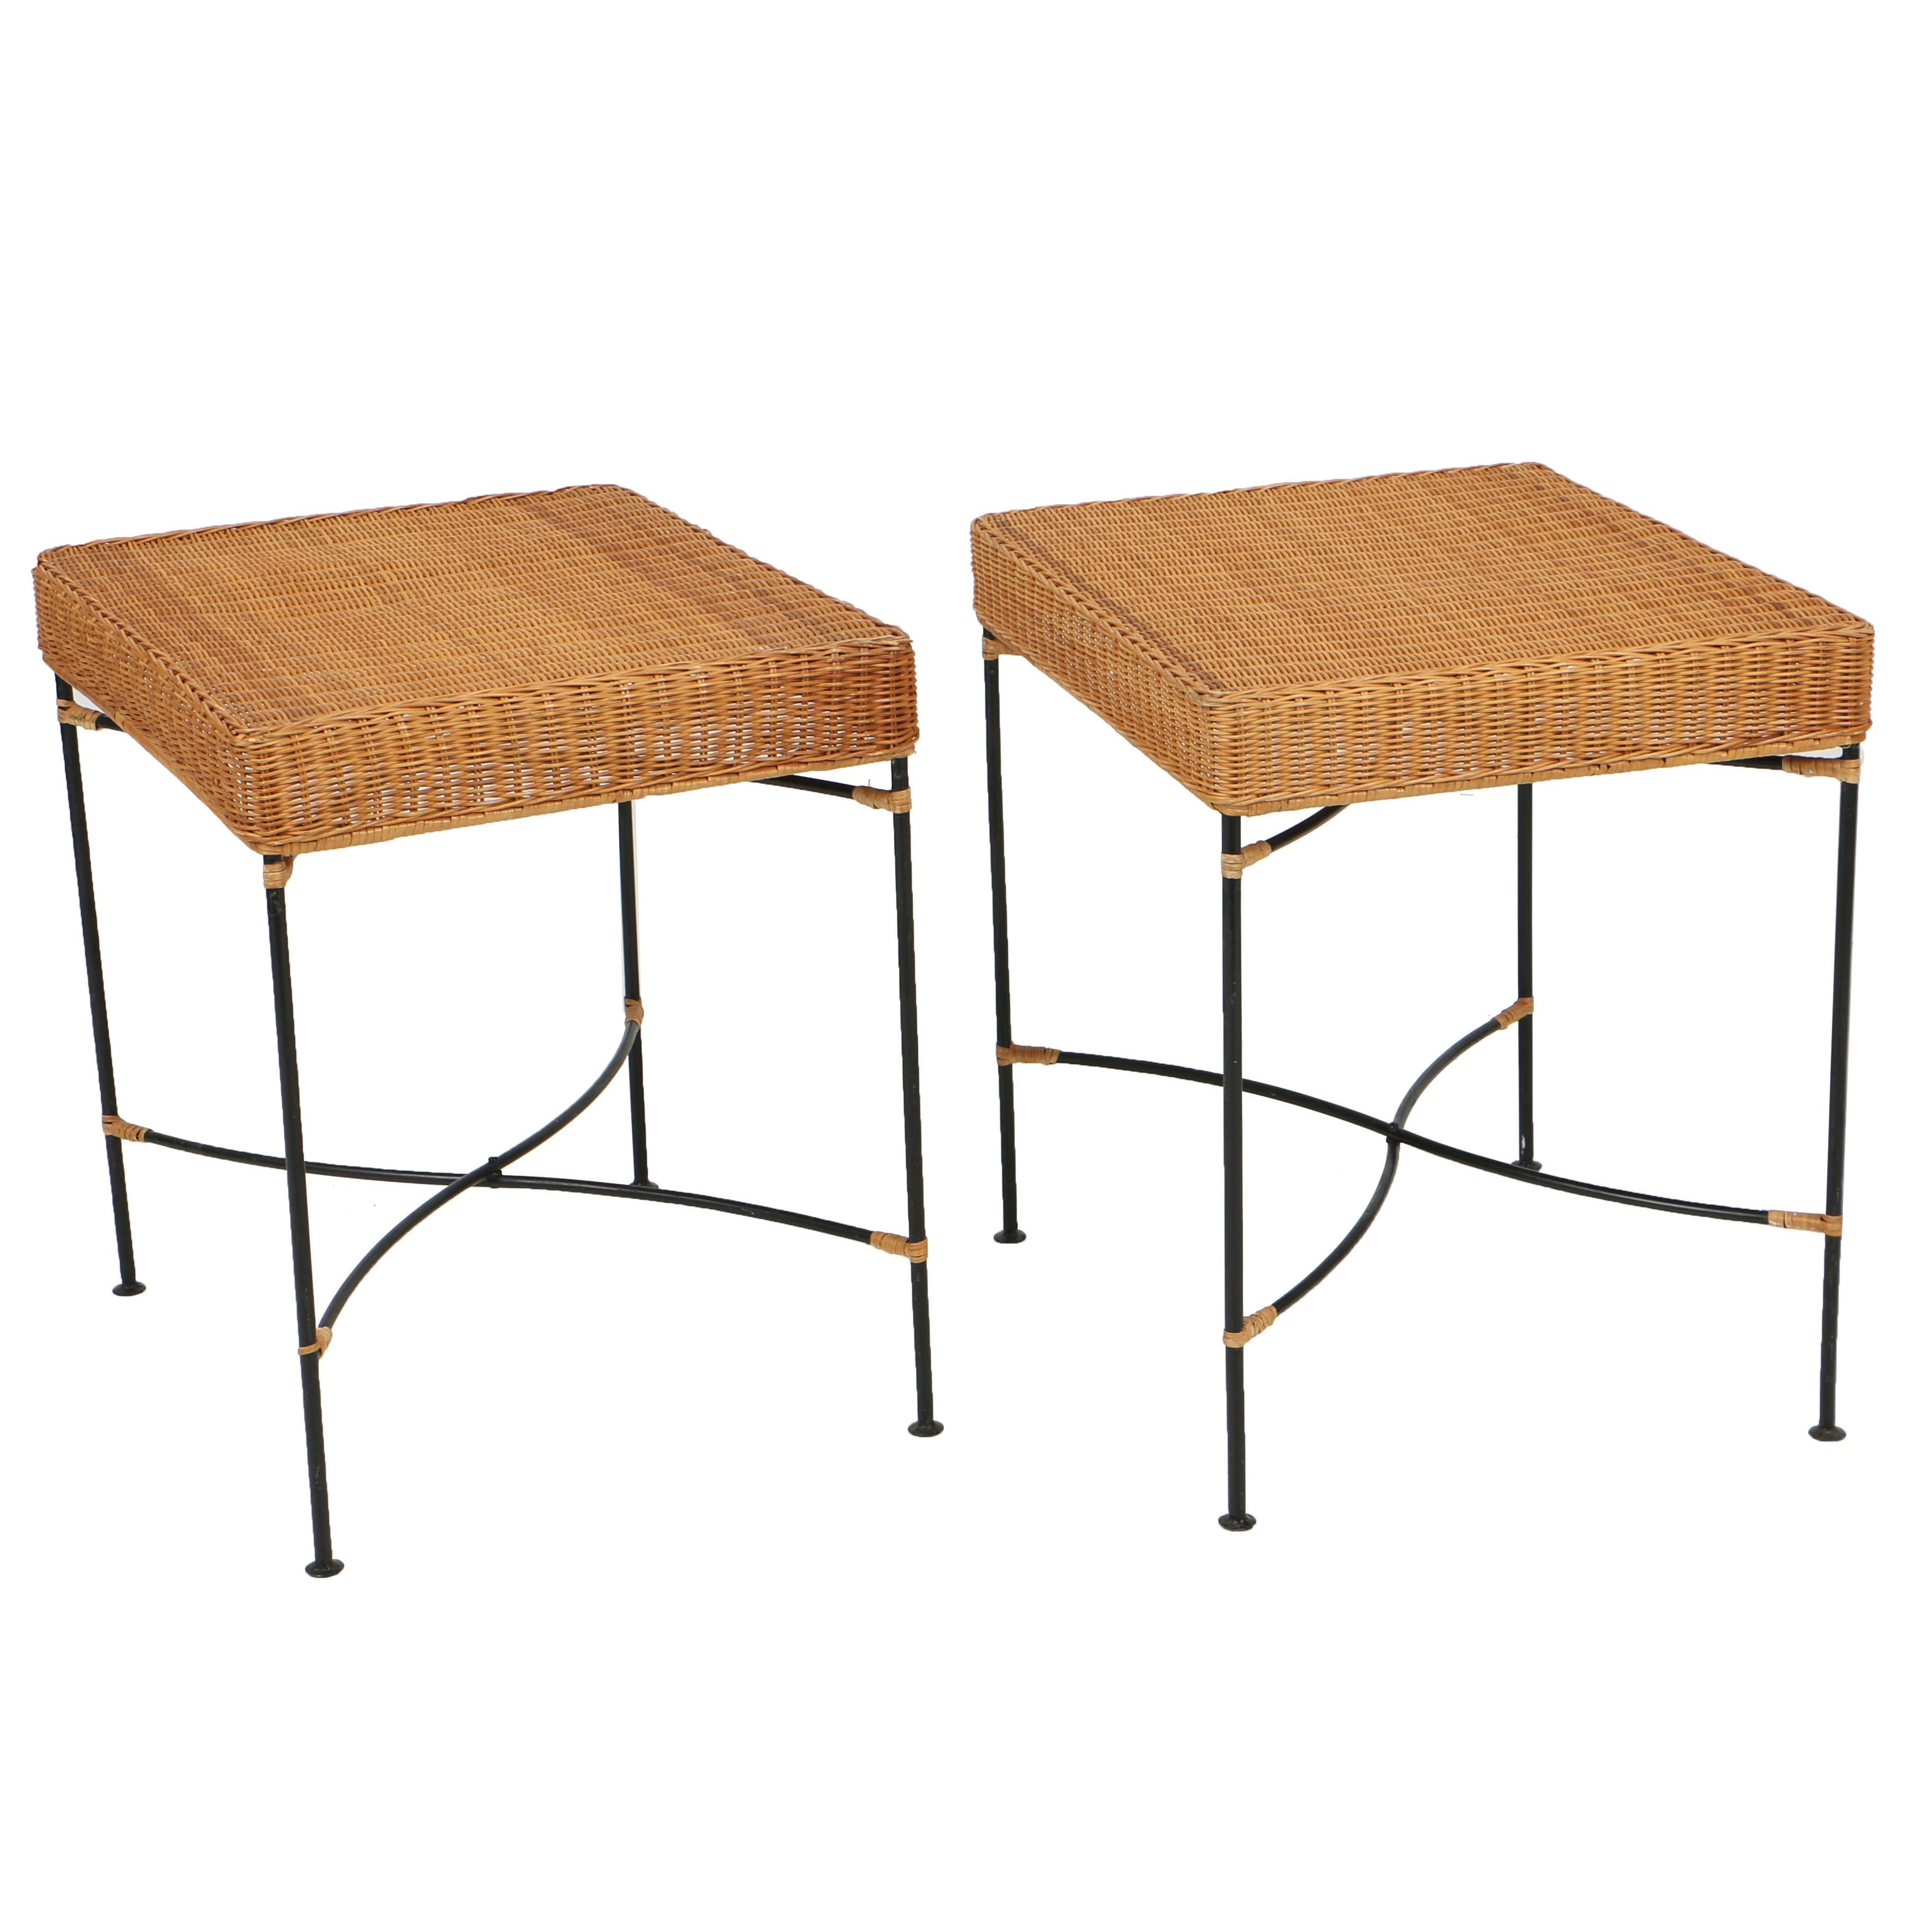 Wicker Side Tables with Folding, Iron Bases